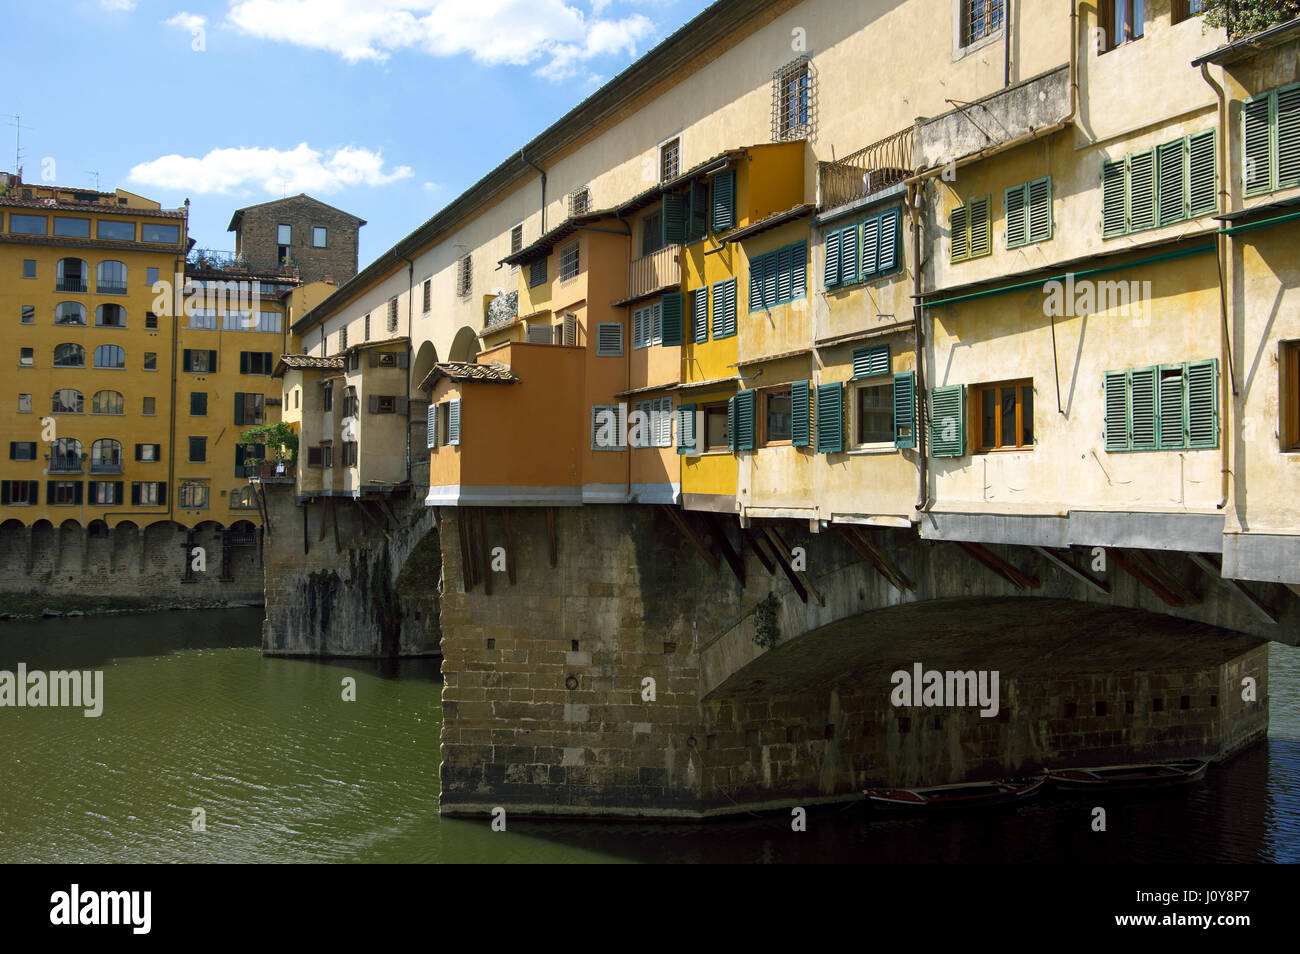 Angled View of Ponte Vecchio (Old Bridge) on Arno River - Florence (Firenze), Tuscany, Italy, Europe - Stock Image